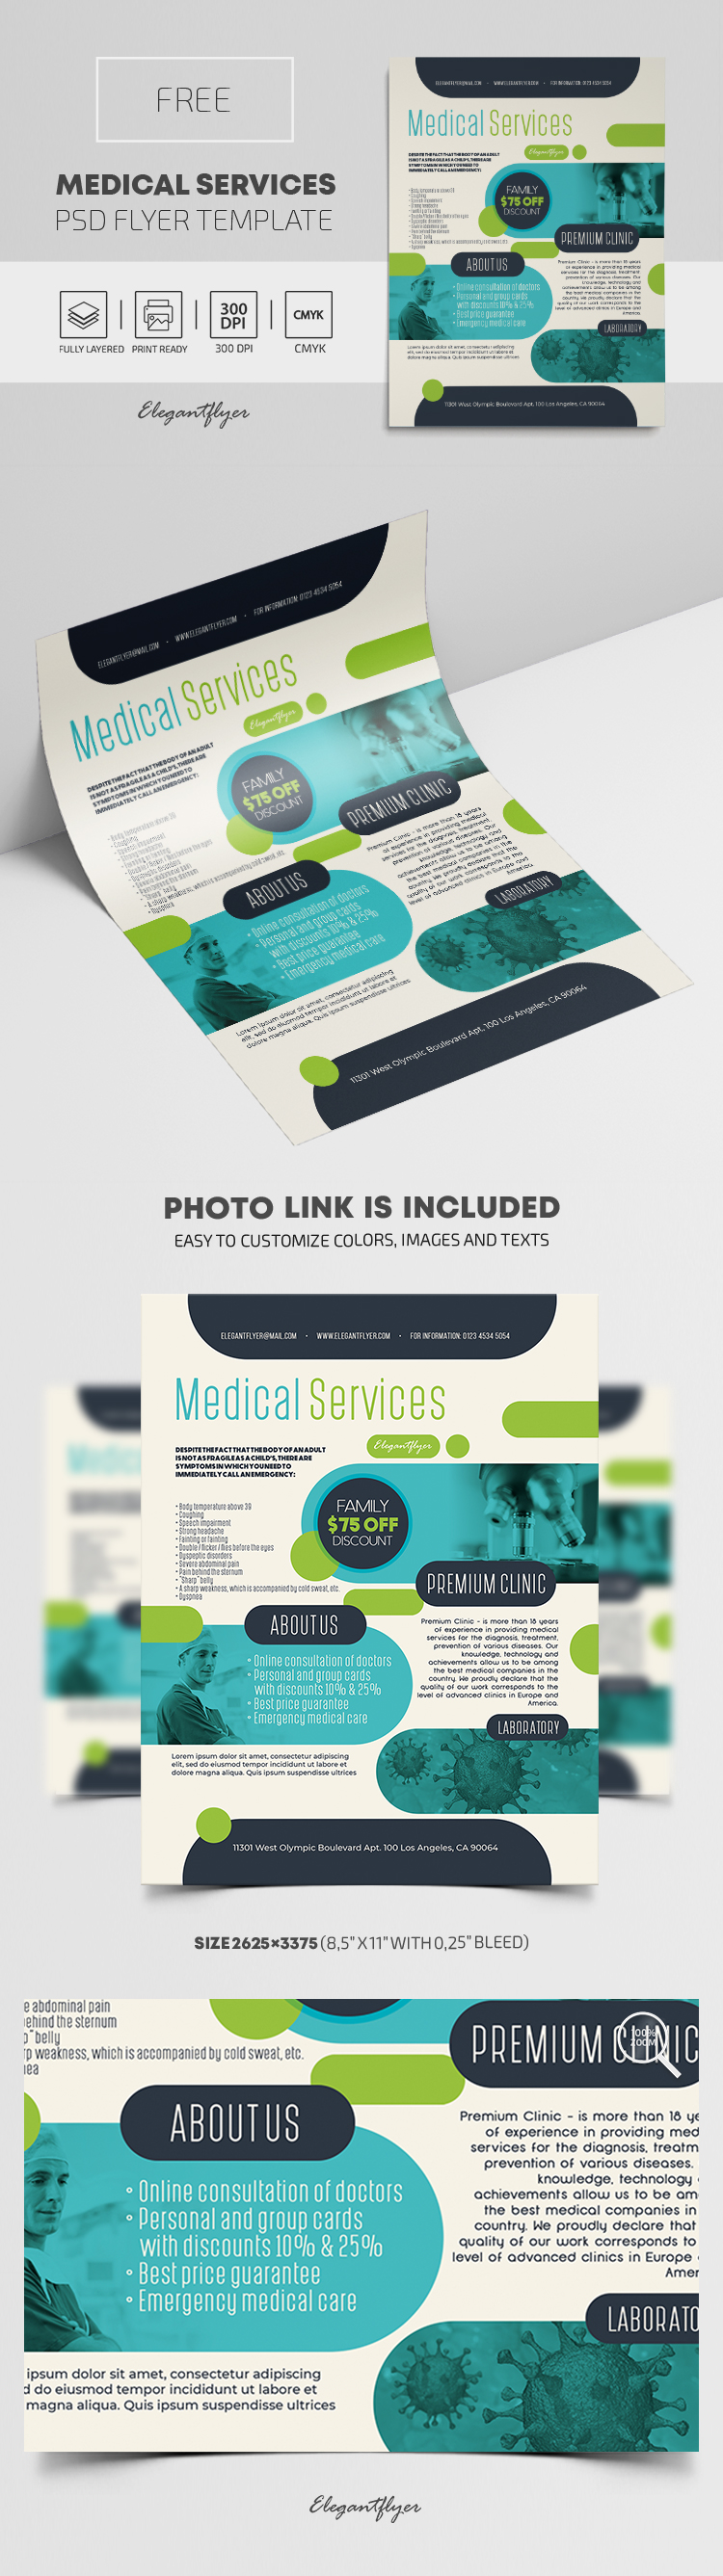 Medical Services – Free PSD Flyer